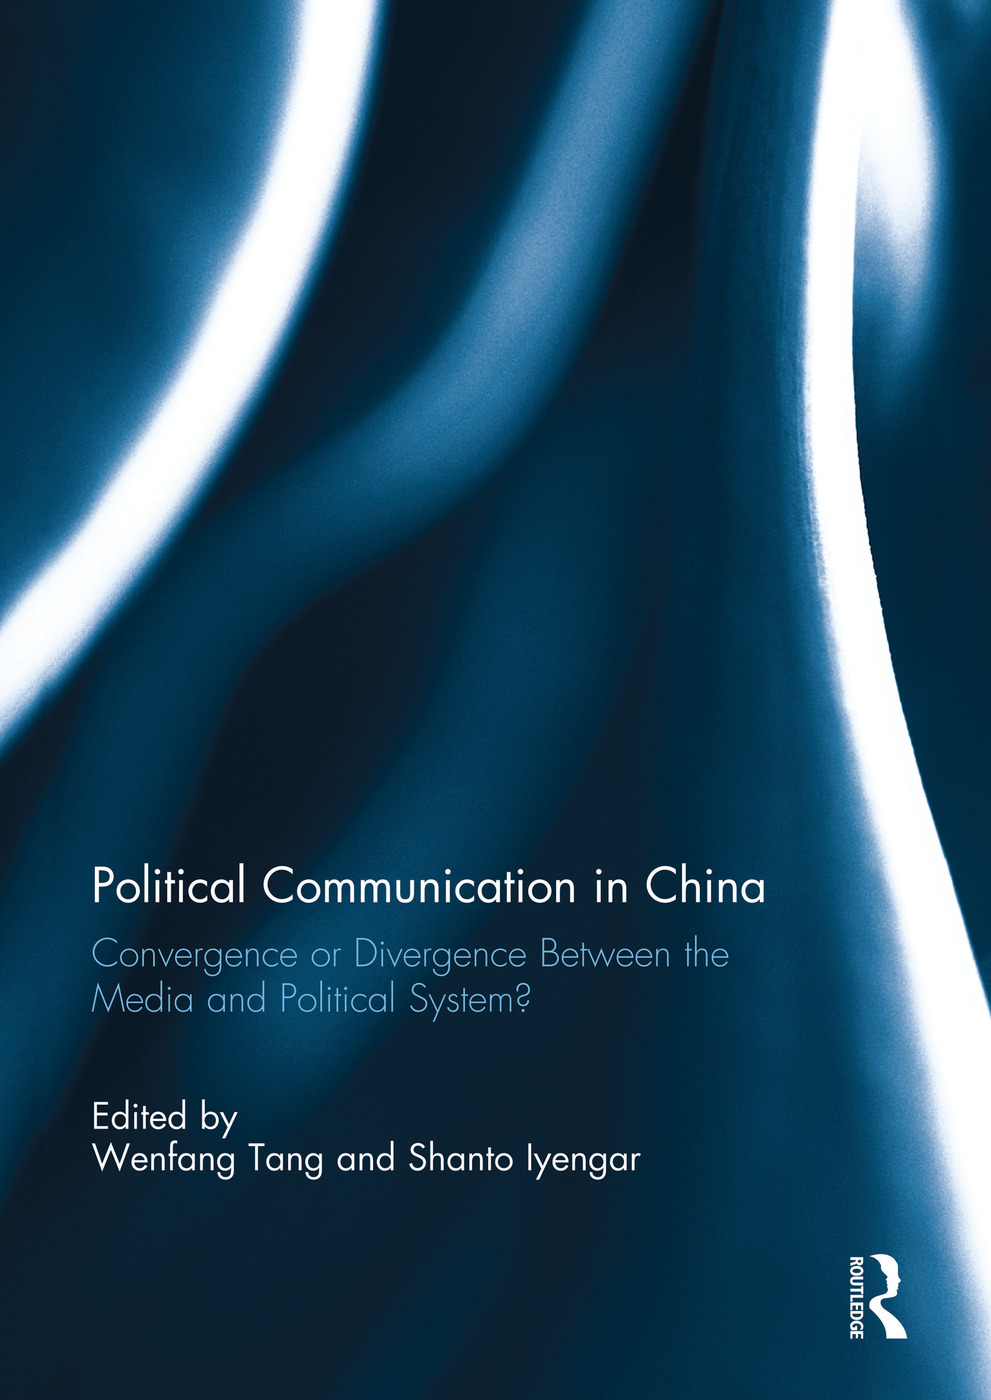 Political Communication in China: Convergence or Divergence Between the Media and Political System? book cover